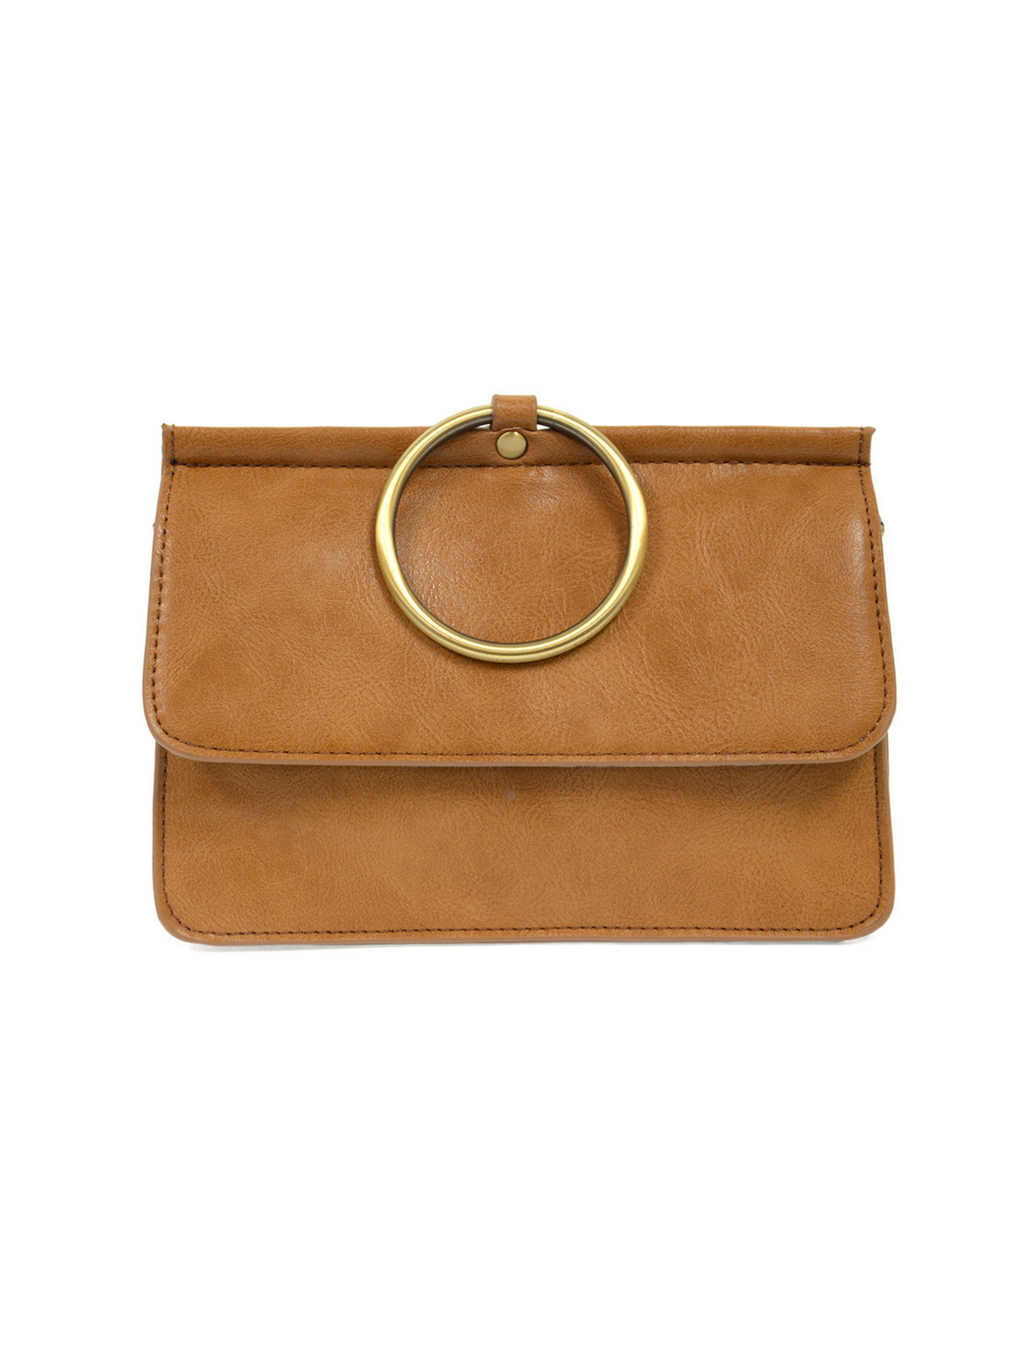 Aria Ring Bag - Camel